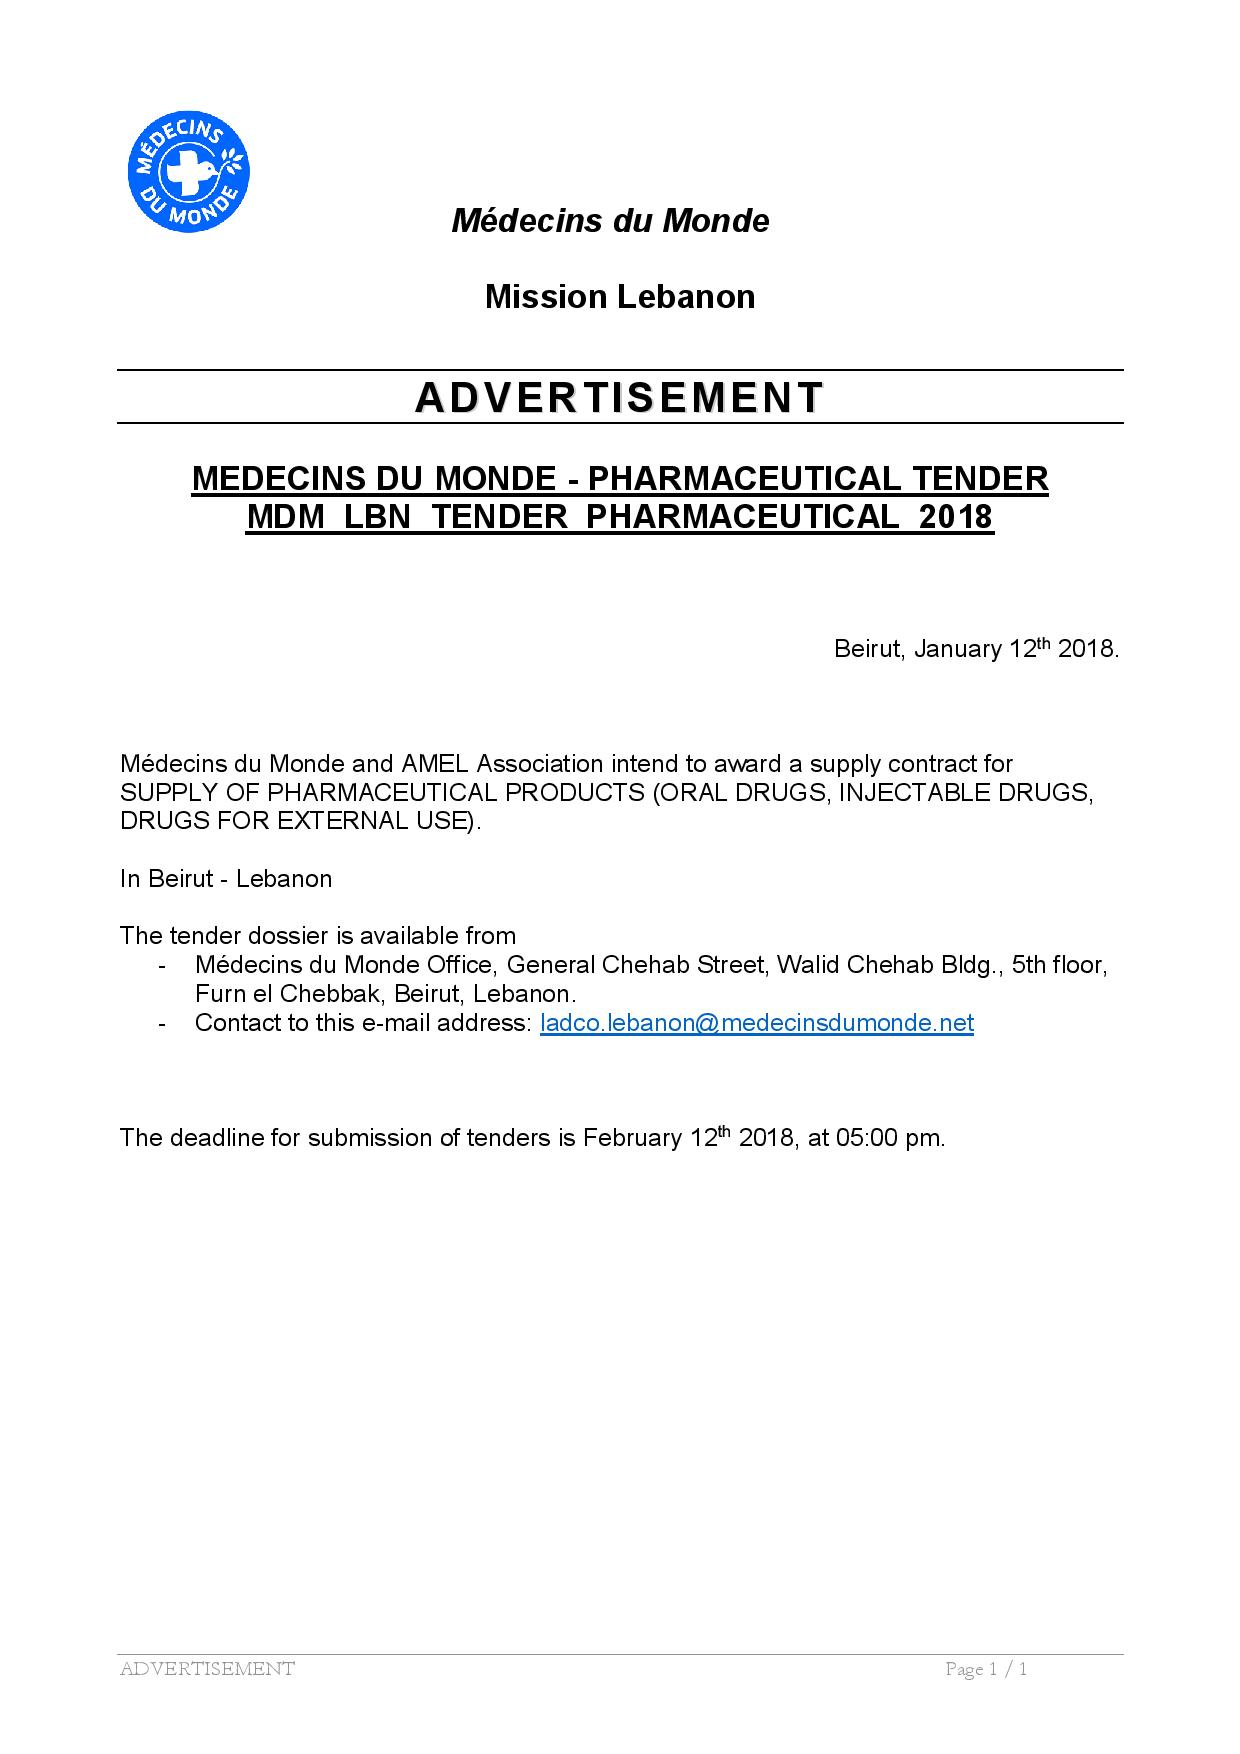 Tender LEB 2018 -03 publication of local advertisement VF-page-001